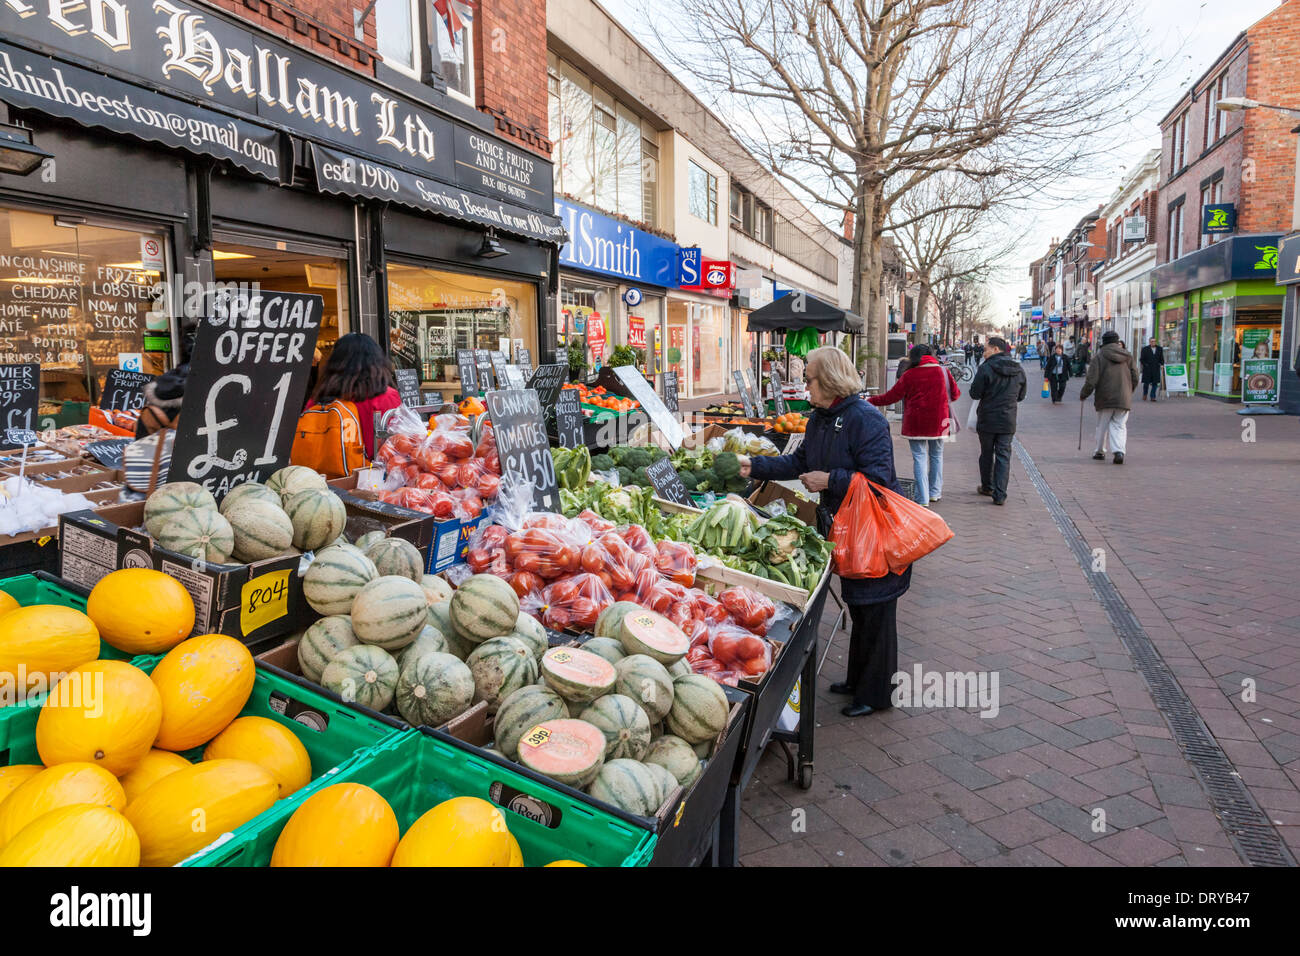 Person shopping for fruit and veg at a greengrocers among other shops in a pedestrianised area, High Street, Beeston, Nottinghamshire, England, UK - Stock Image